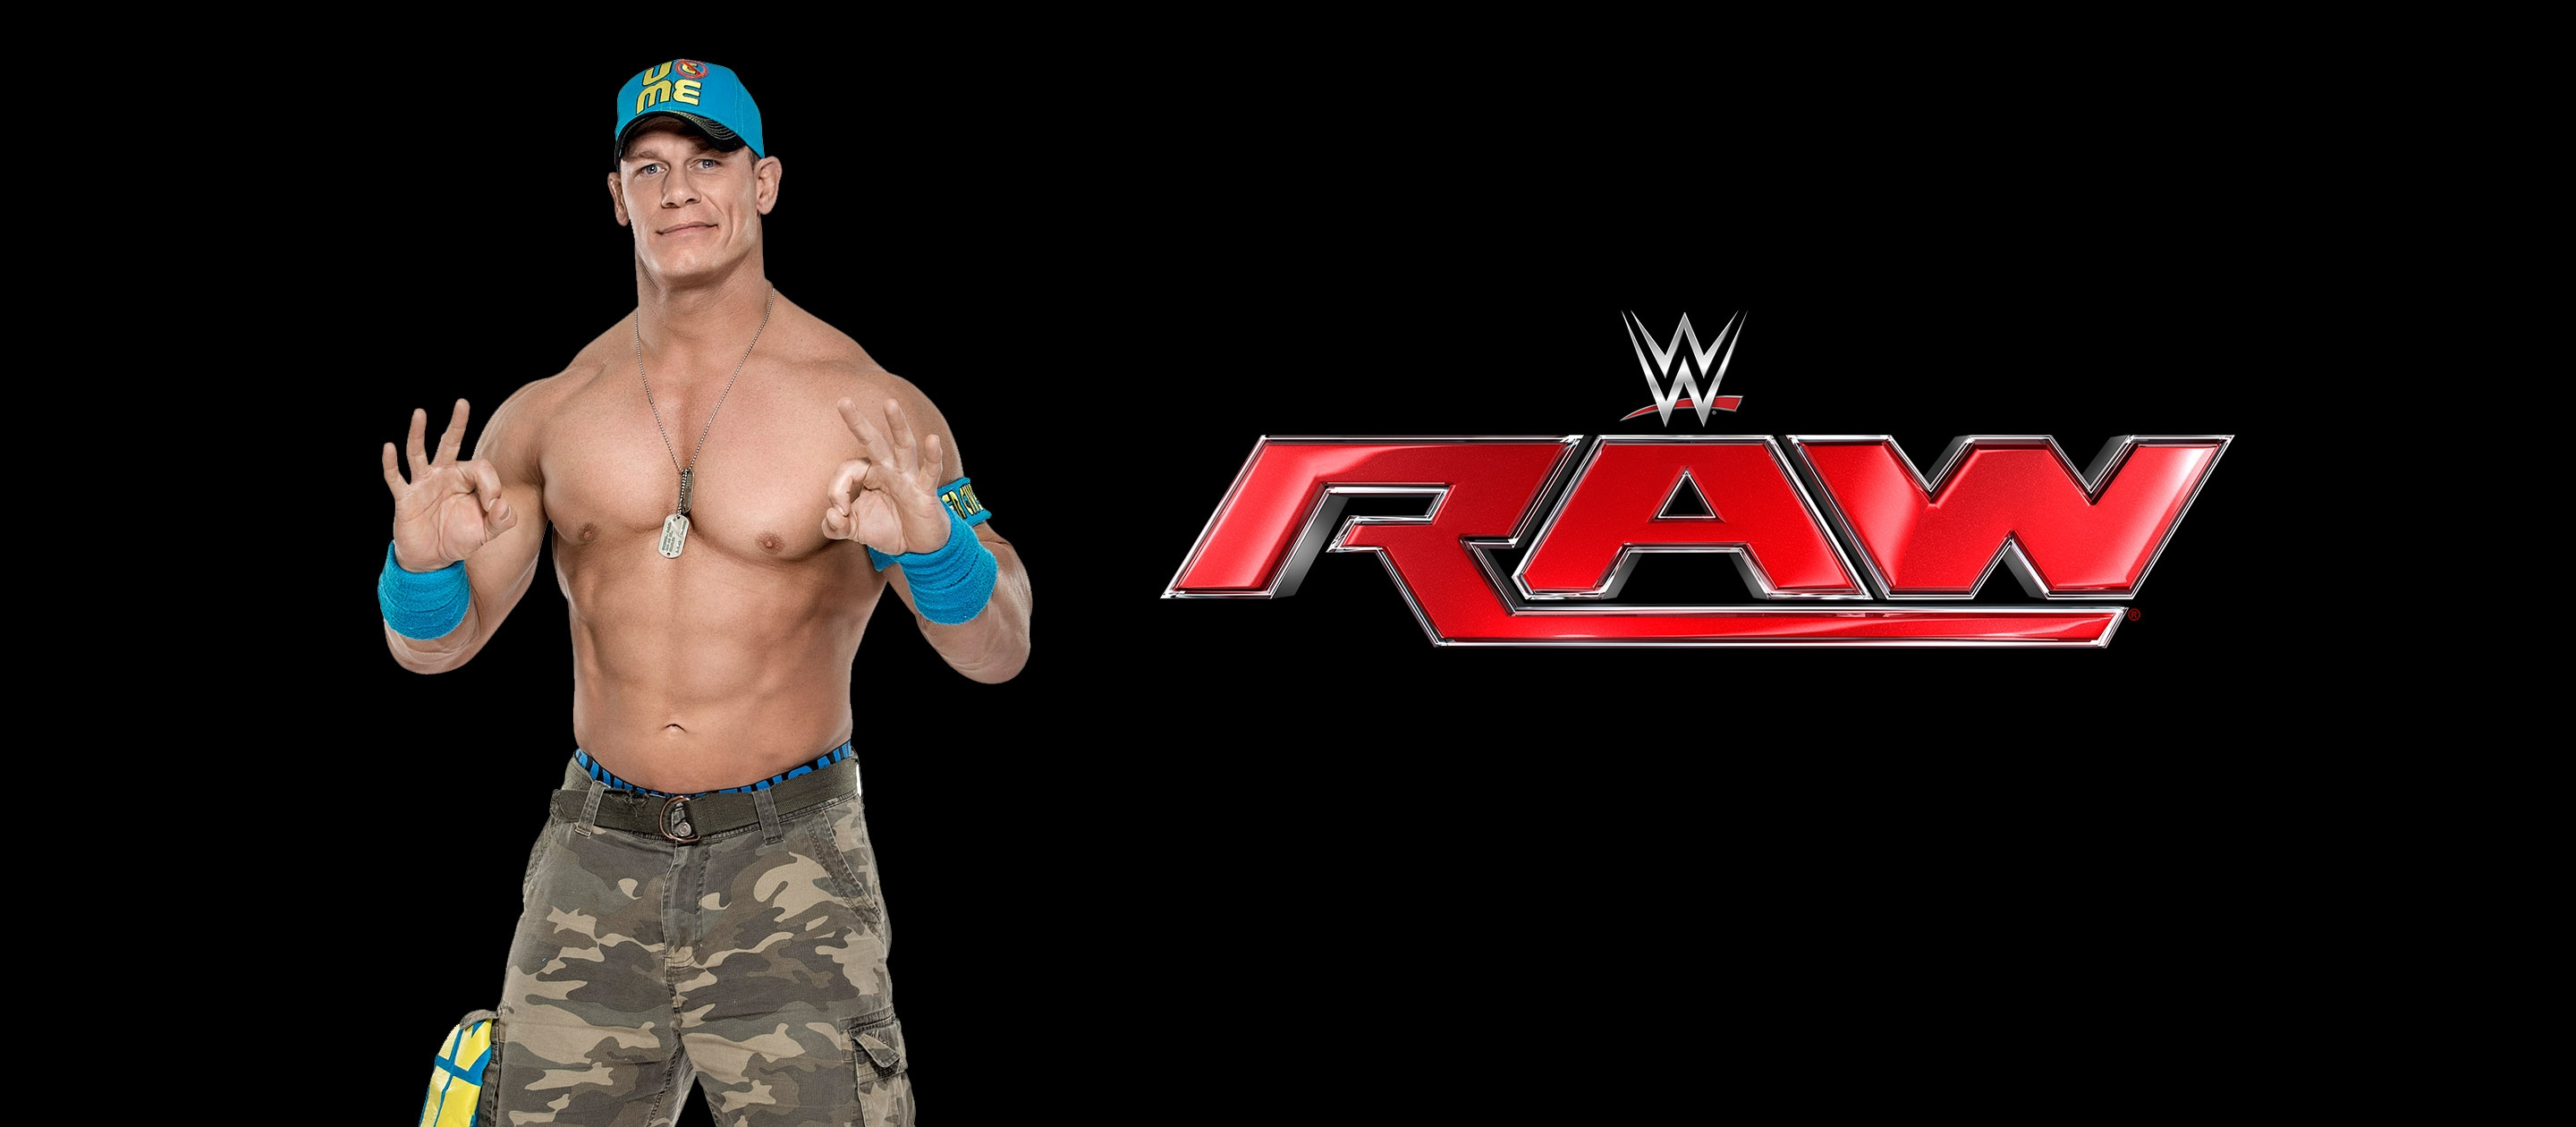 John Cena Wallpapers Free Download